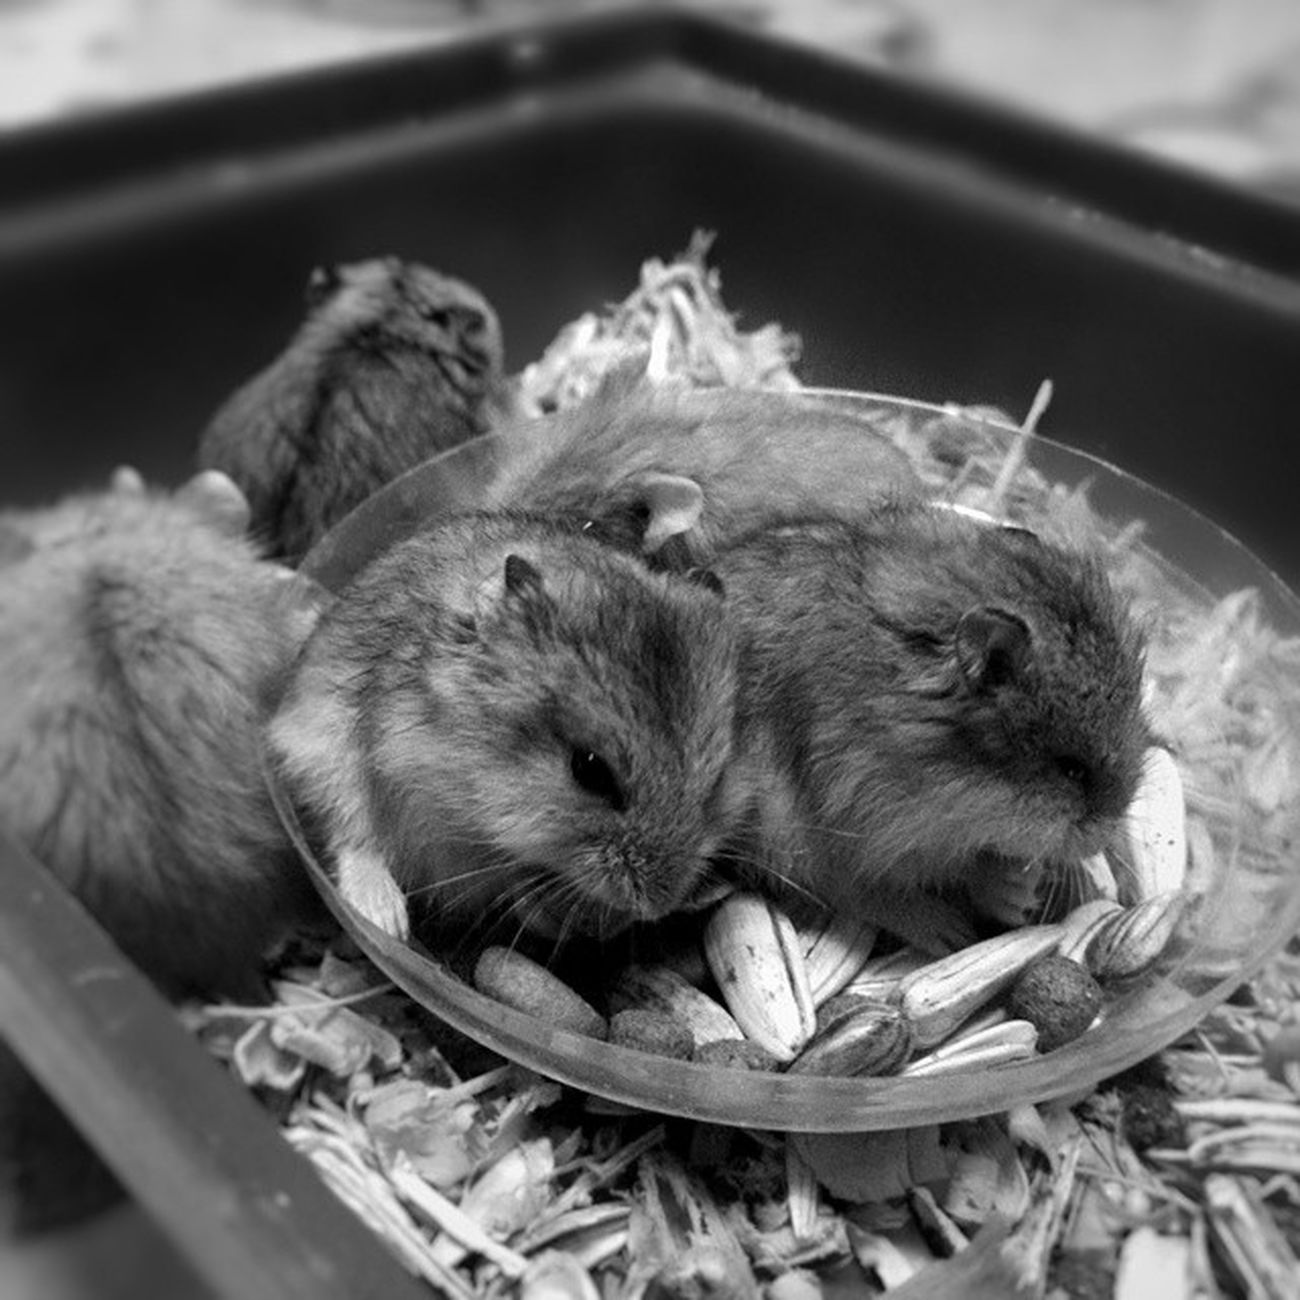 🐹🐹🐹🐹🐹 ... Morning Morningactivity POTD Thursday breakfast seeds nuts hamster hamsters babyhamsters babyanimals pet fluffy blackandwhite blackandwhitephotography colorless world_bnw bw_awards insta_bw bnw_planet ae_bnw bnw bnw_society bwstyles_gf bnw_diamond bnw_life rsa_bnw